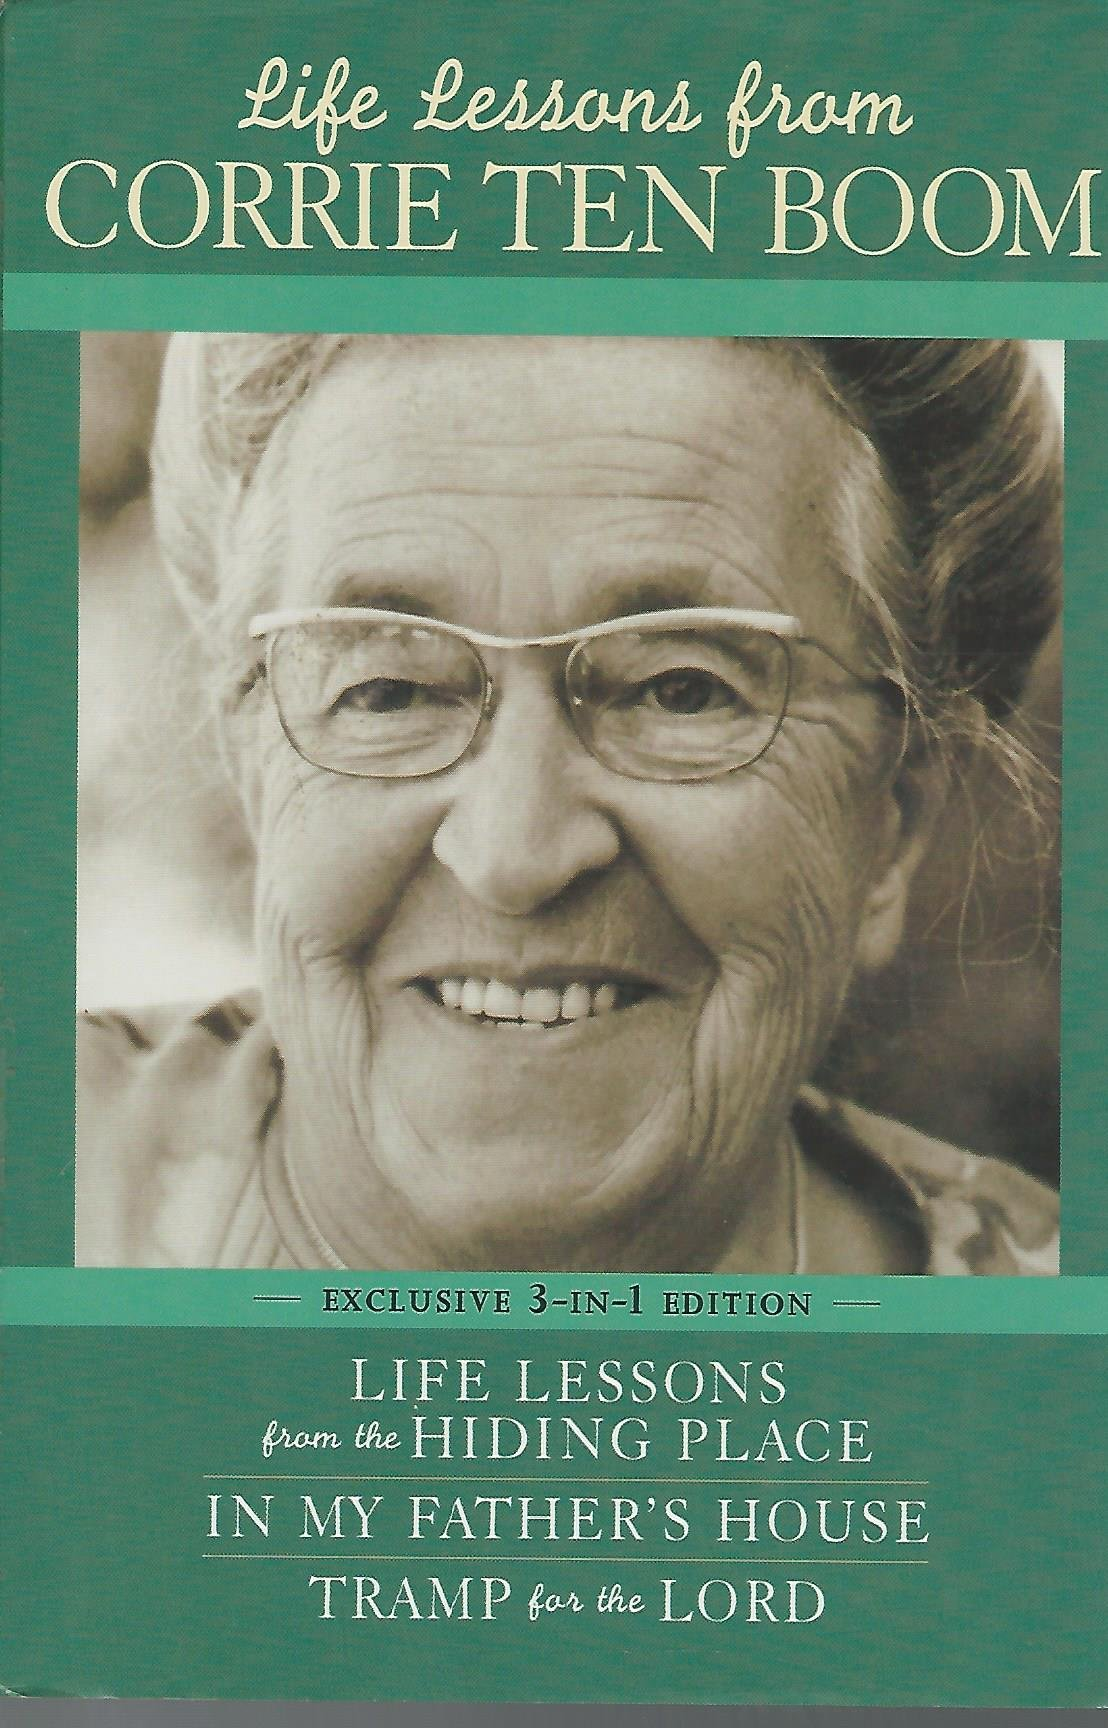 Life lessons from corrie ten boom life lessons from the hiding place in my father s house tramp for the lord pam rosewell moore corrie tenboom